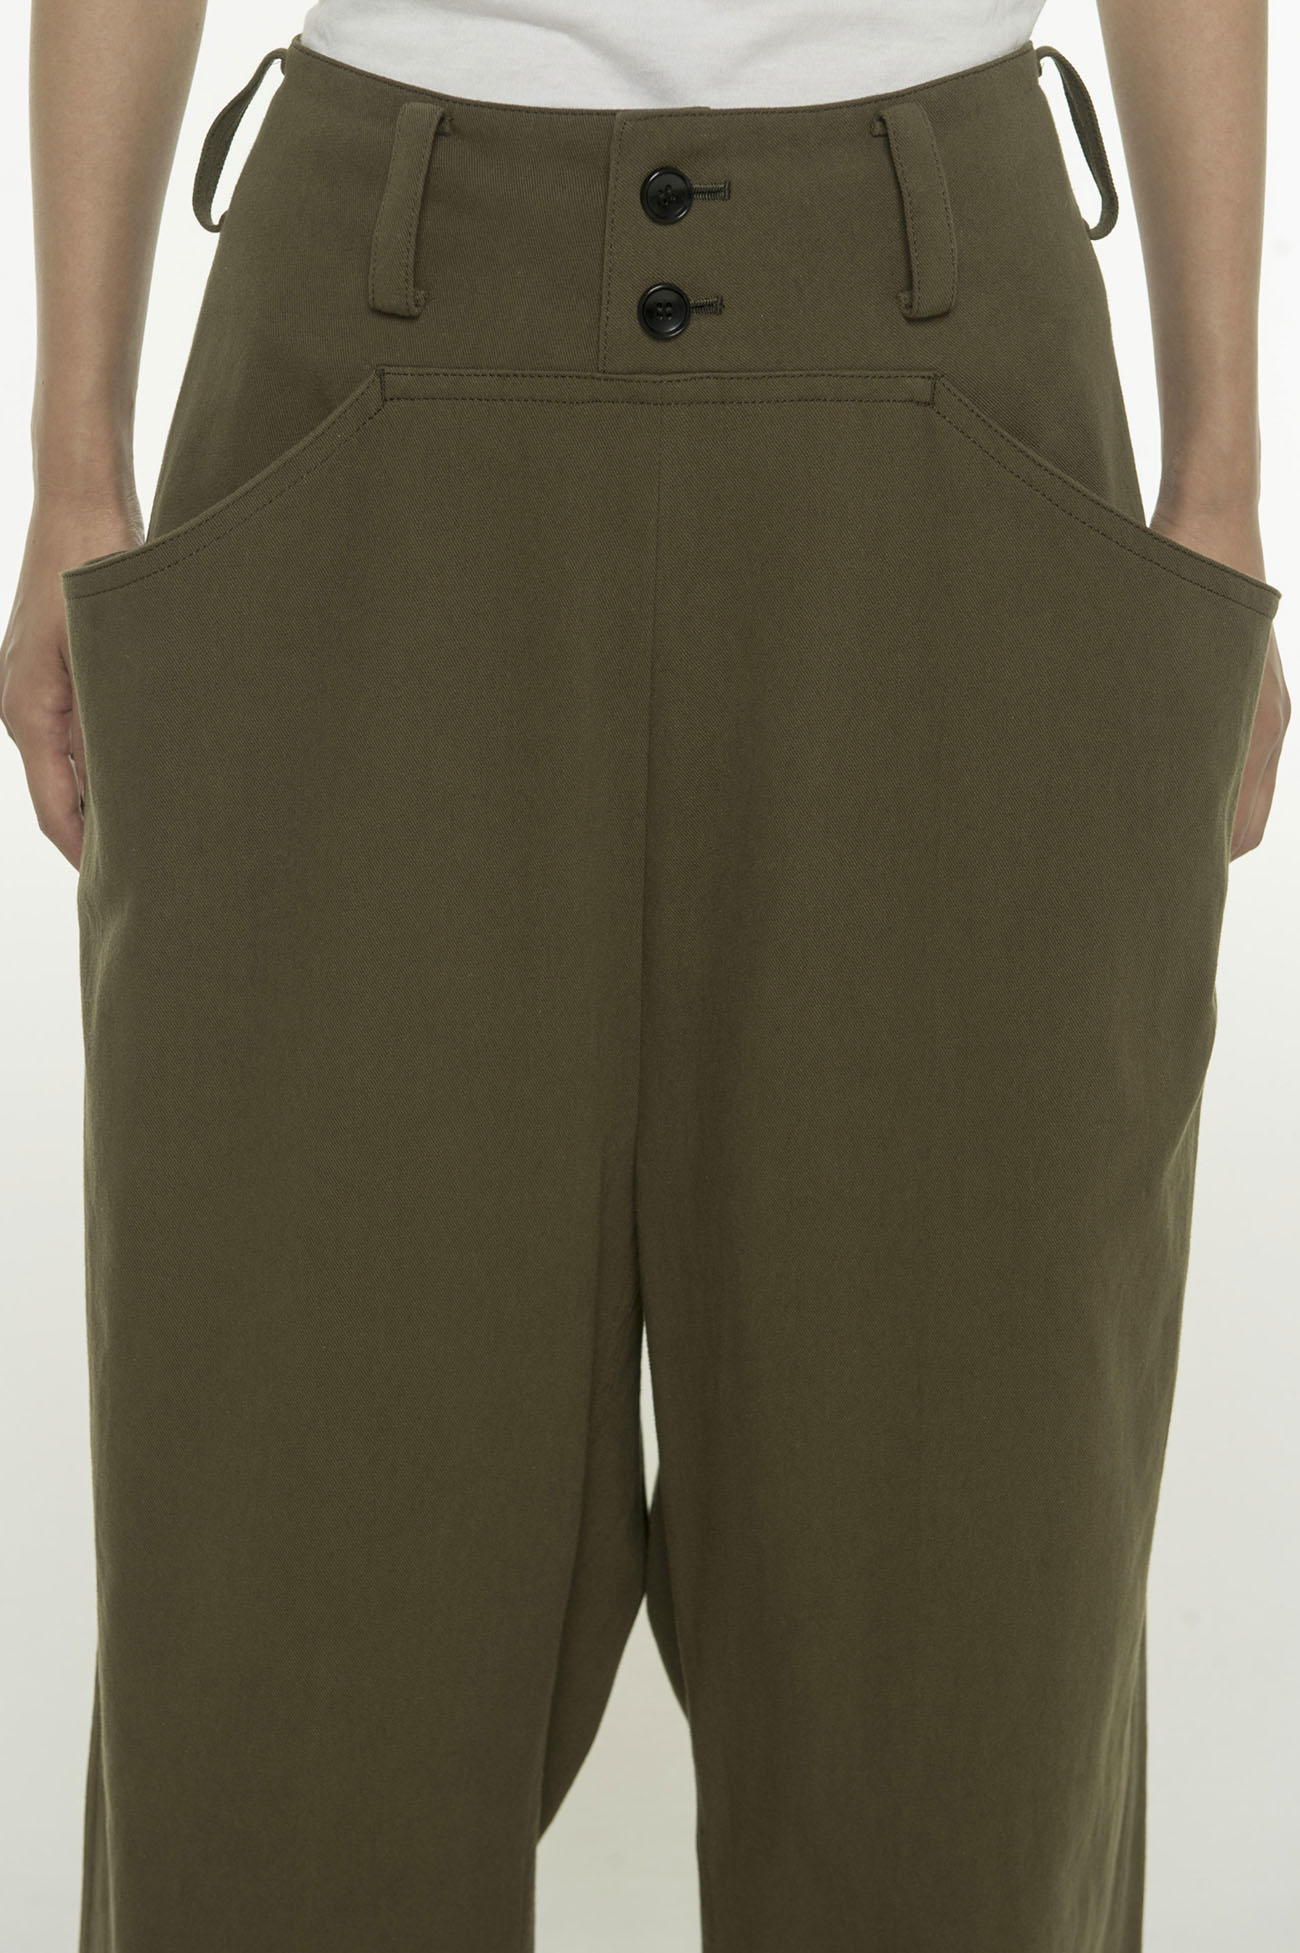 Sharicino switching pocket pants